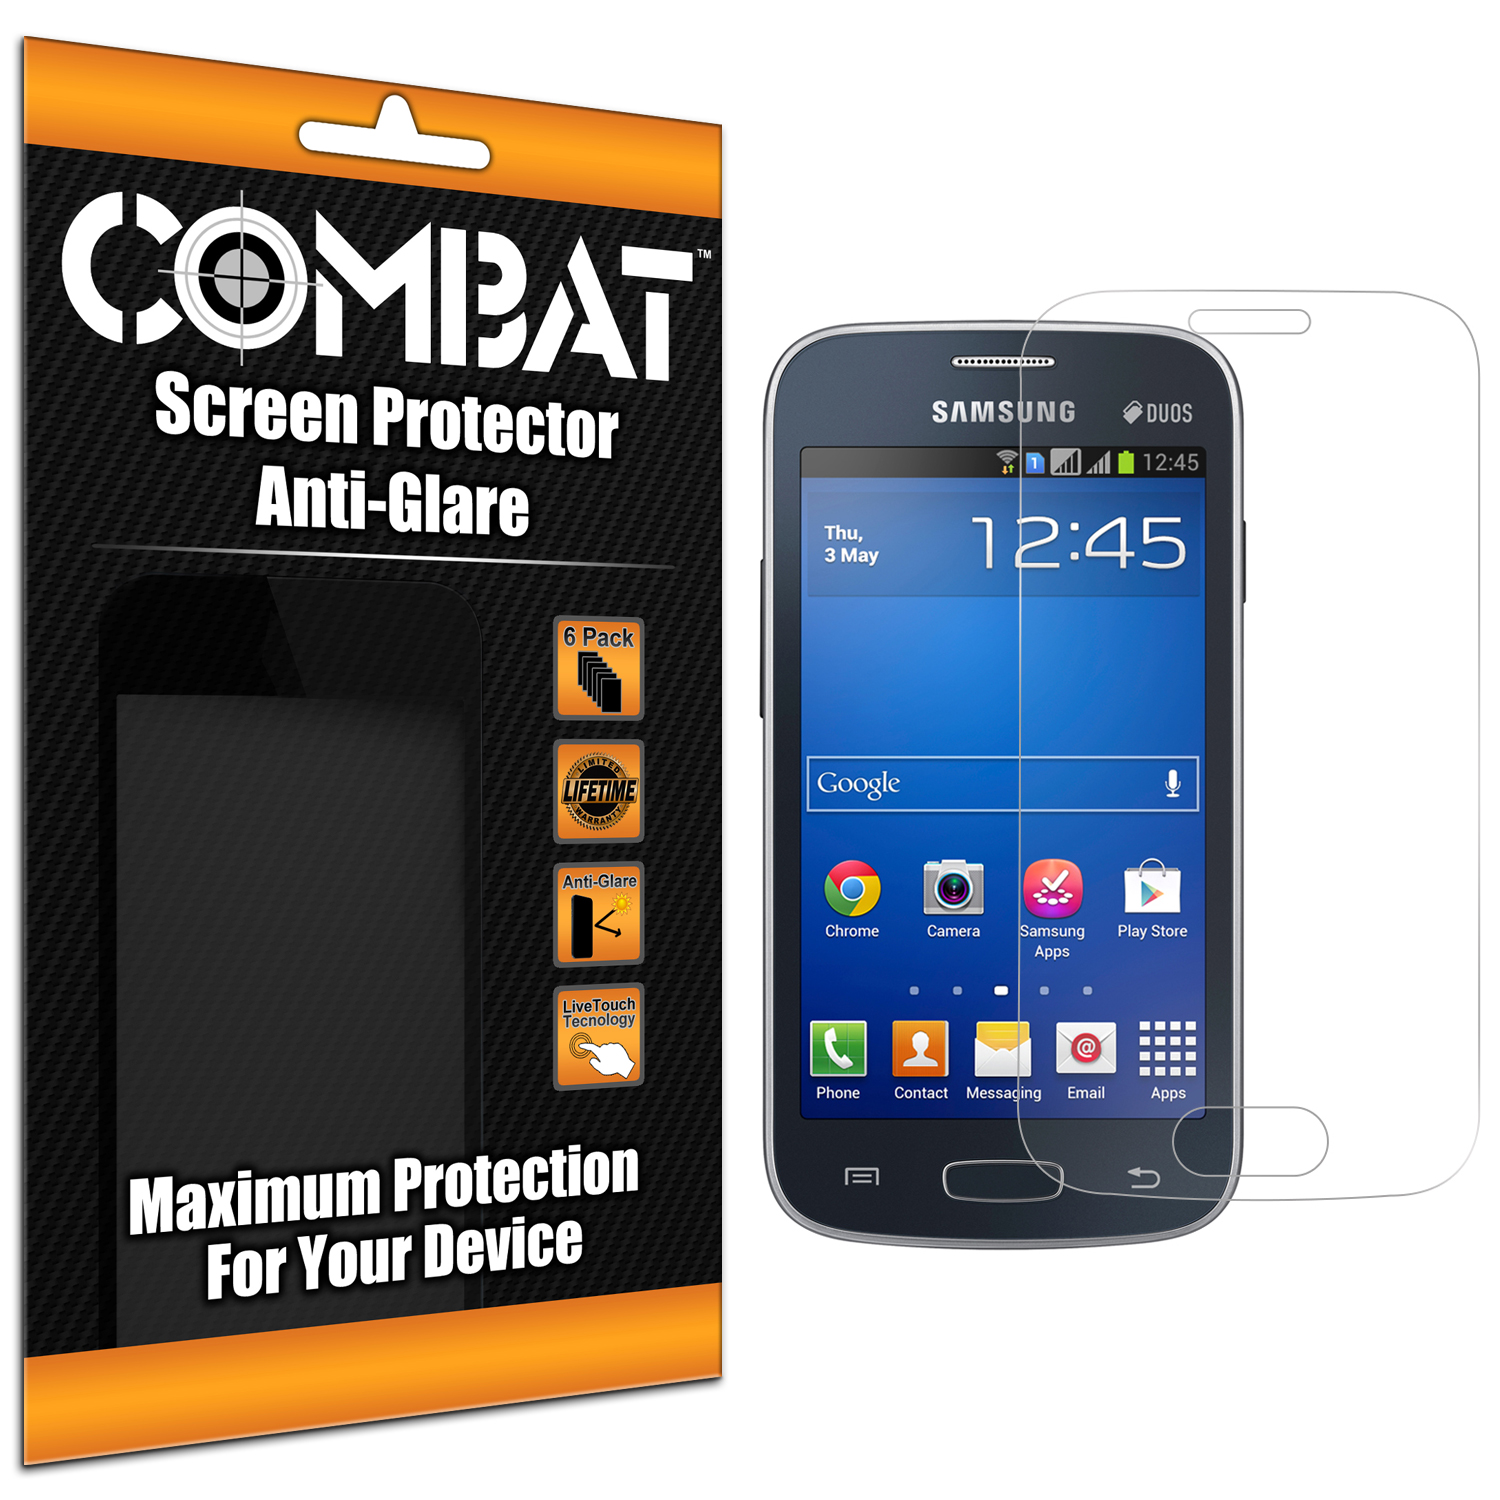 Samsung Galaxy Star 2 Combat 6 Pack Anti-Glare Matte Screen Protector